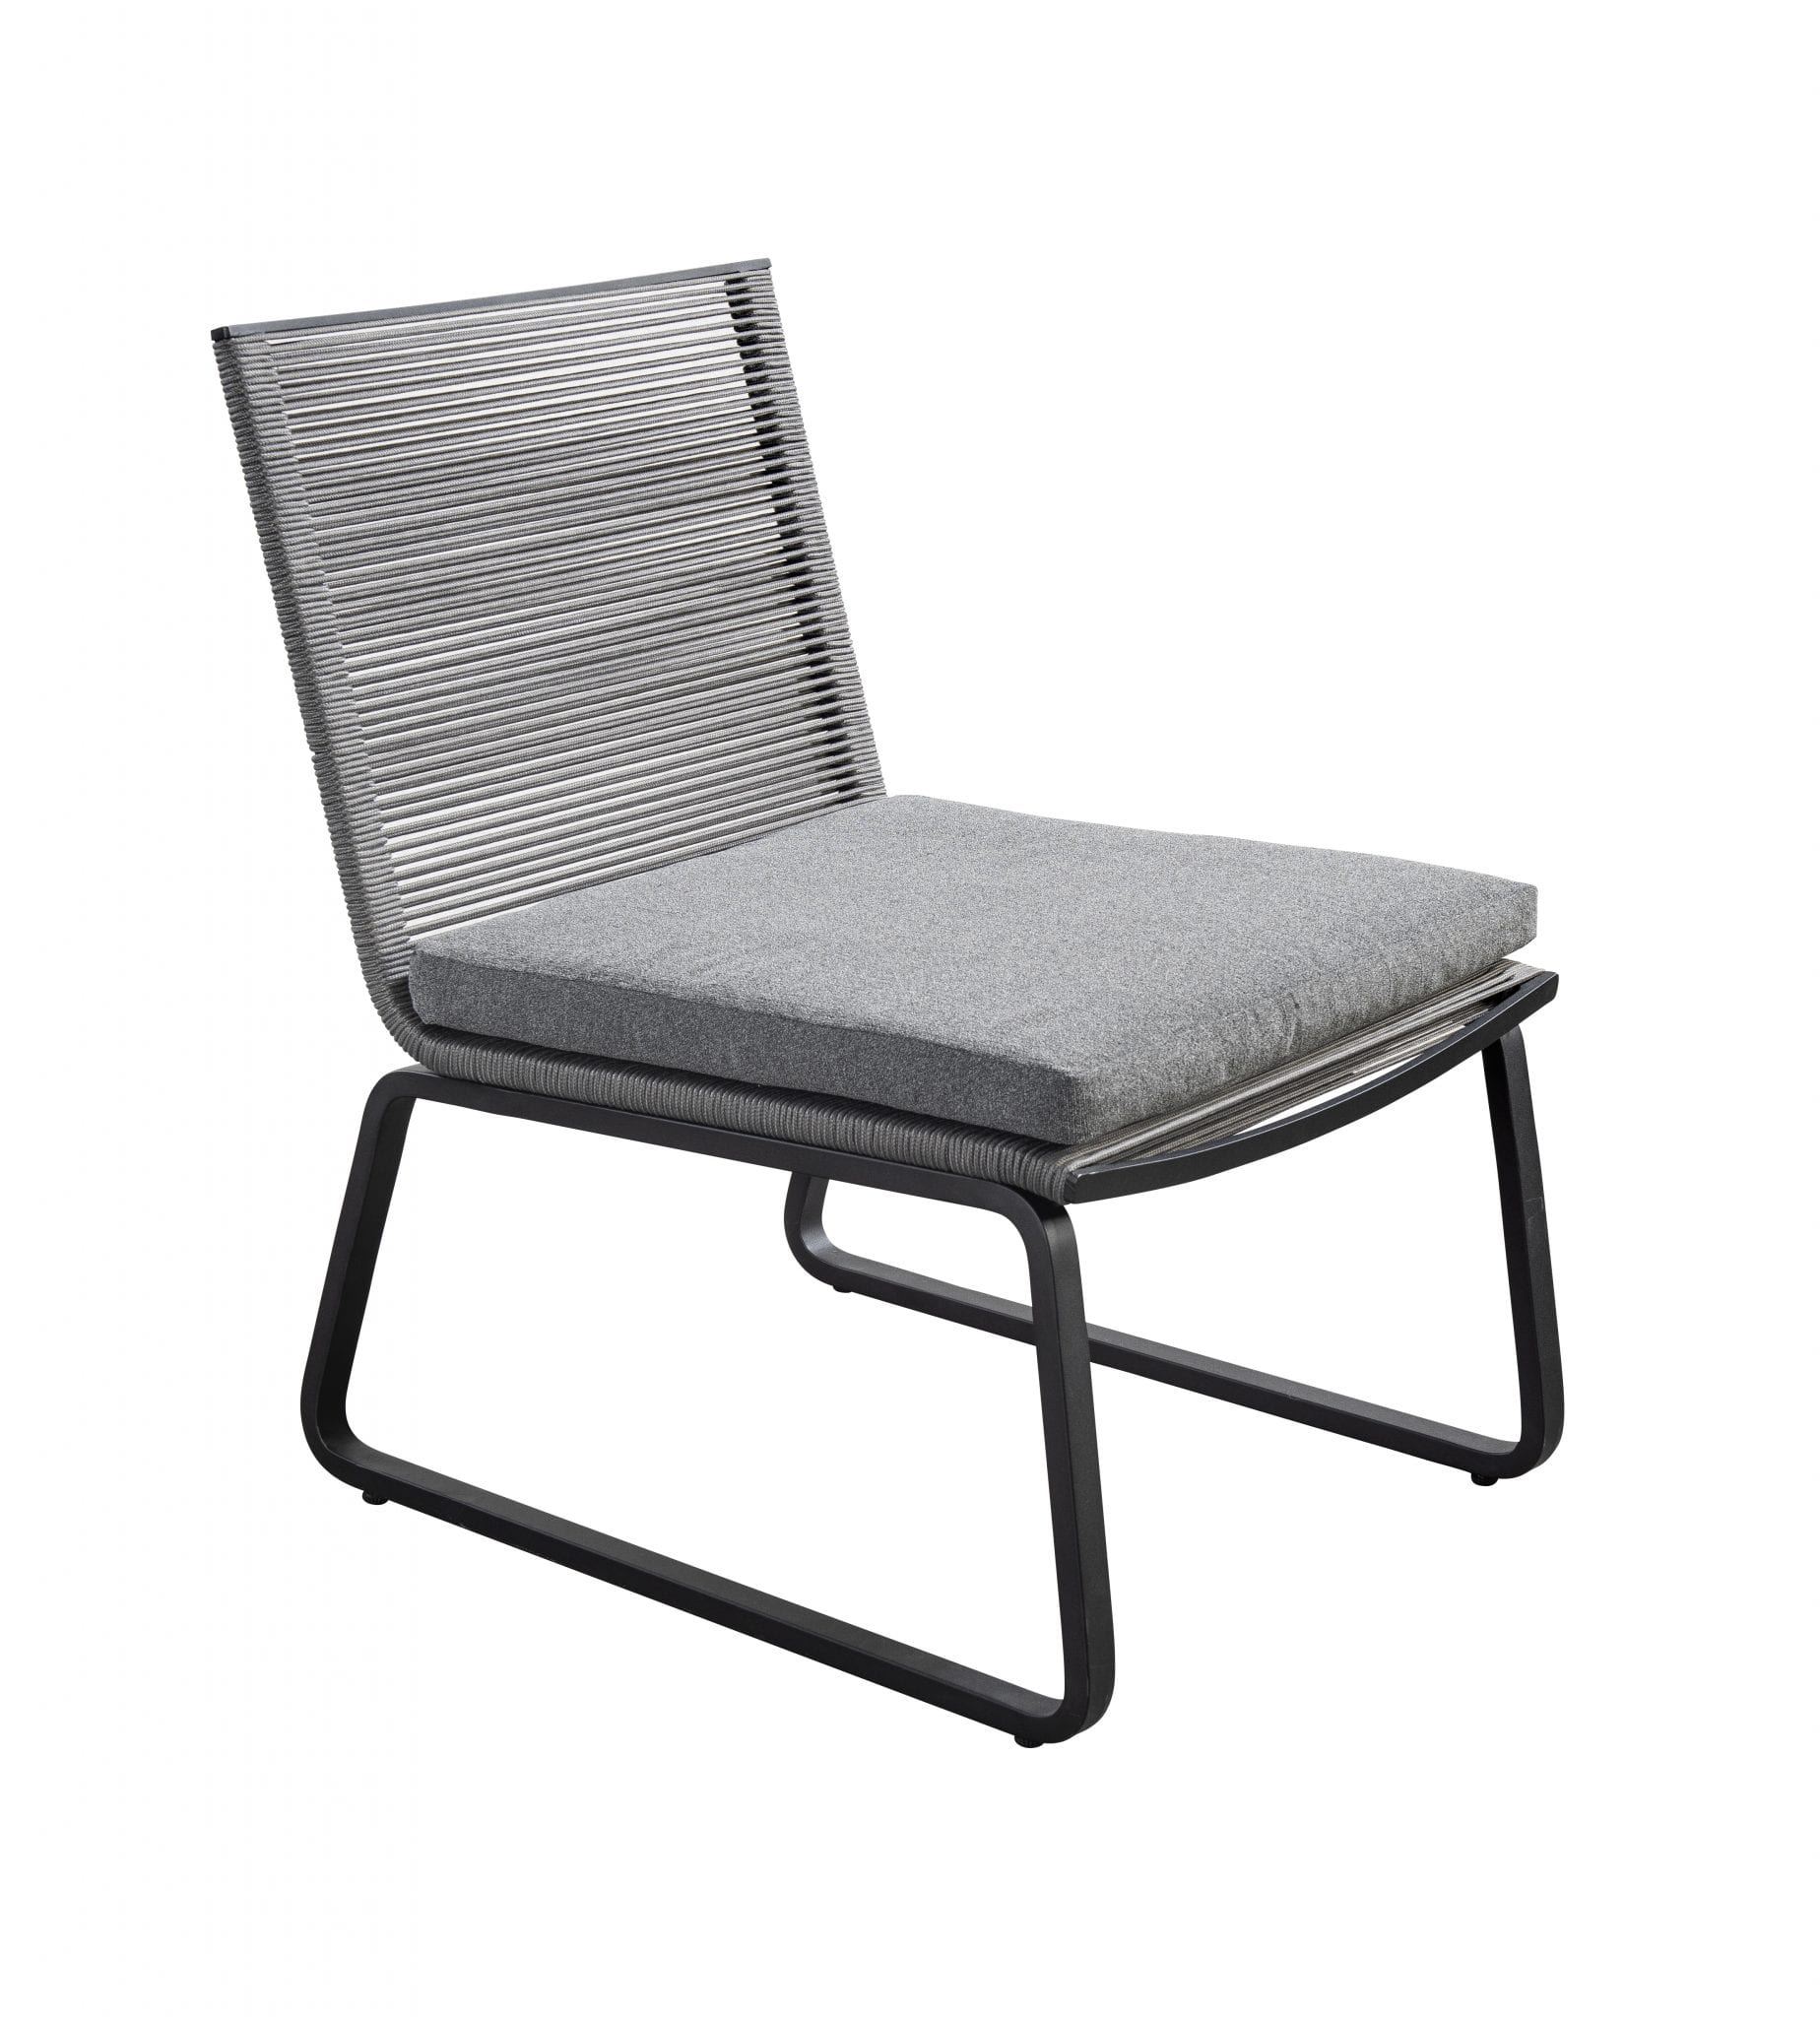 Kome lounge chair - dark grey | Yoi Furniture